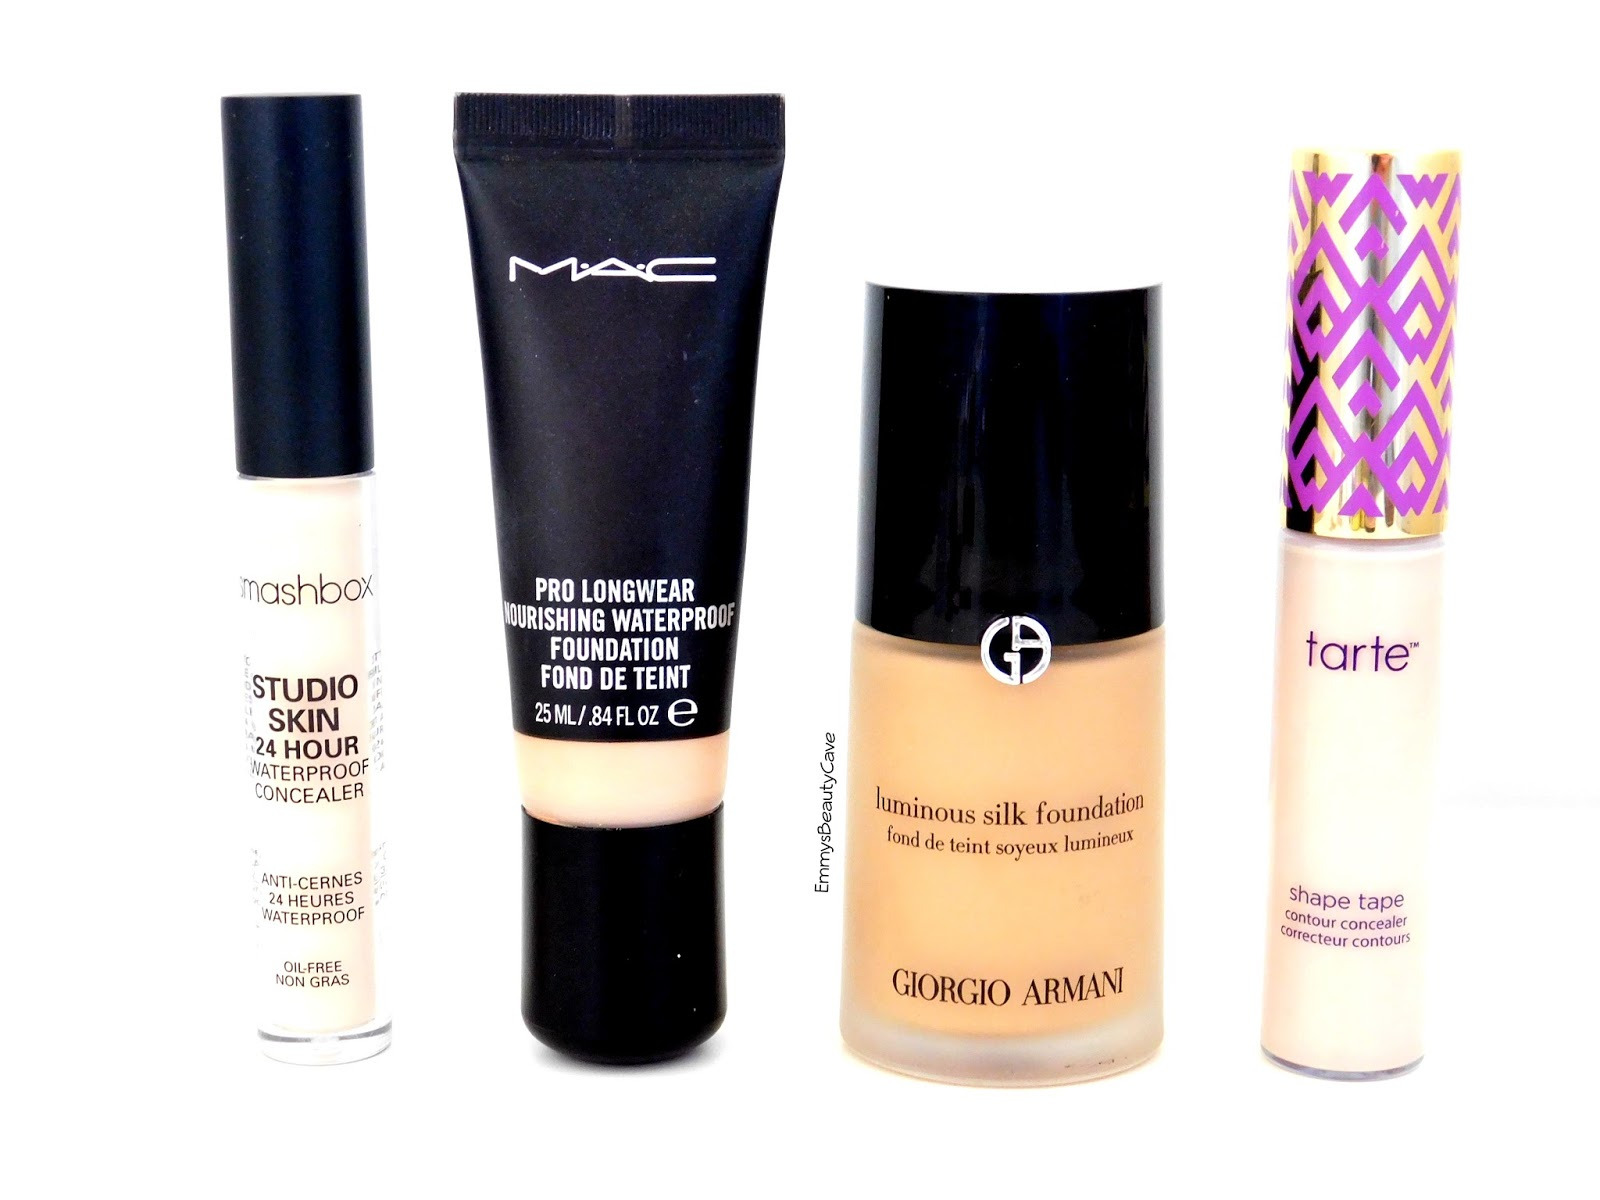 My Spring Summer Makeup Picks Includes Swatches | EmmyWritesAbout